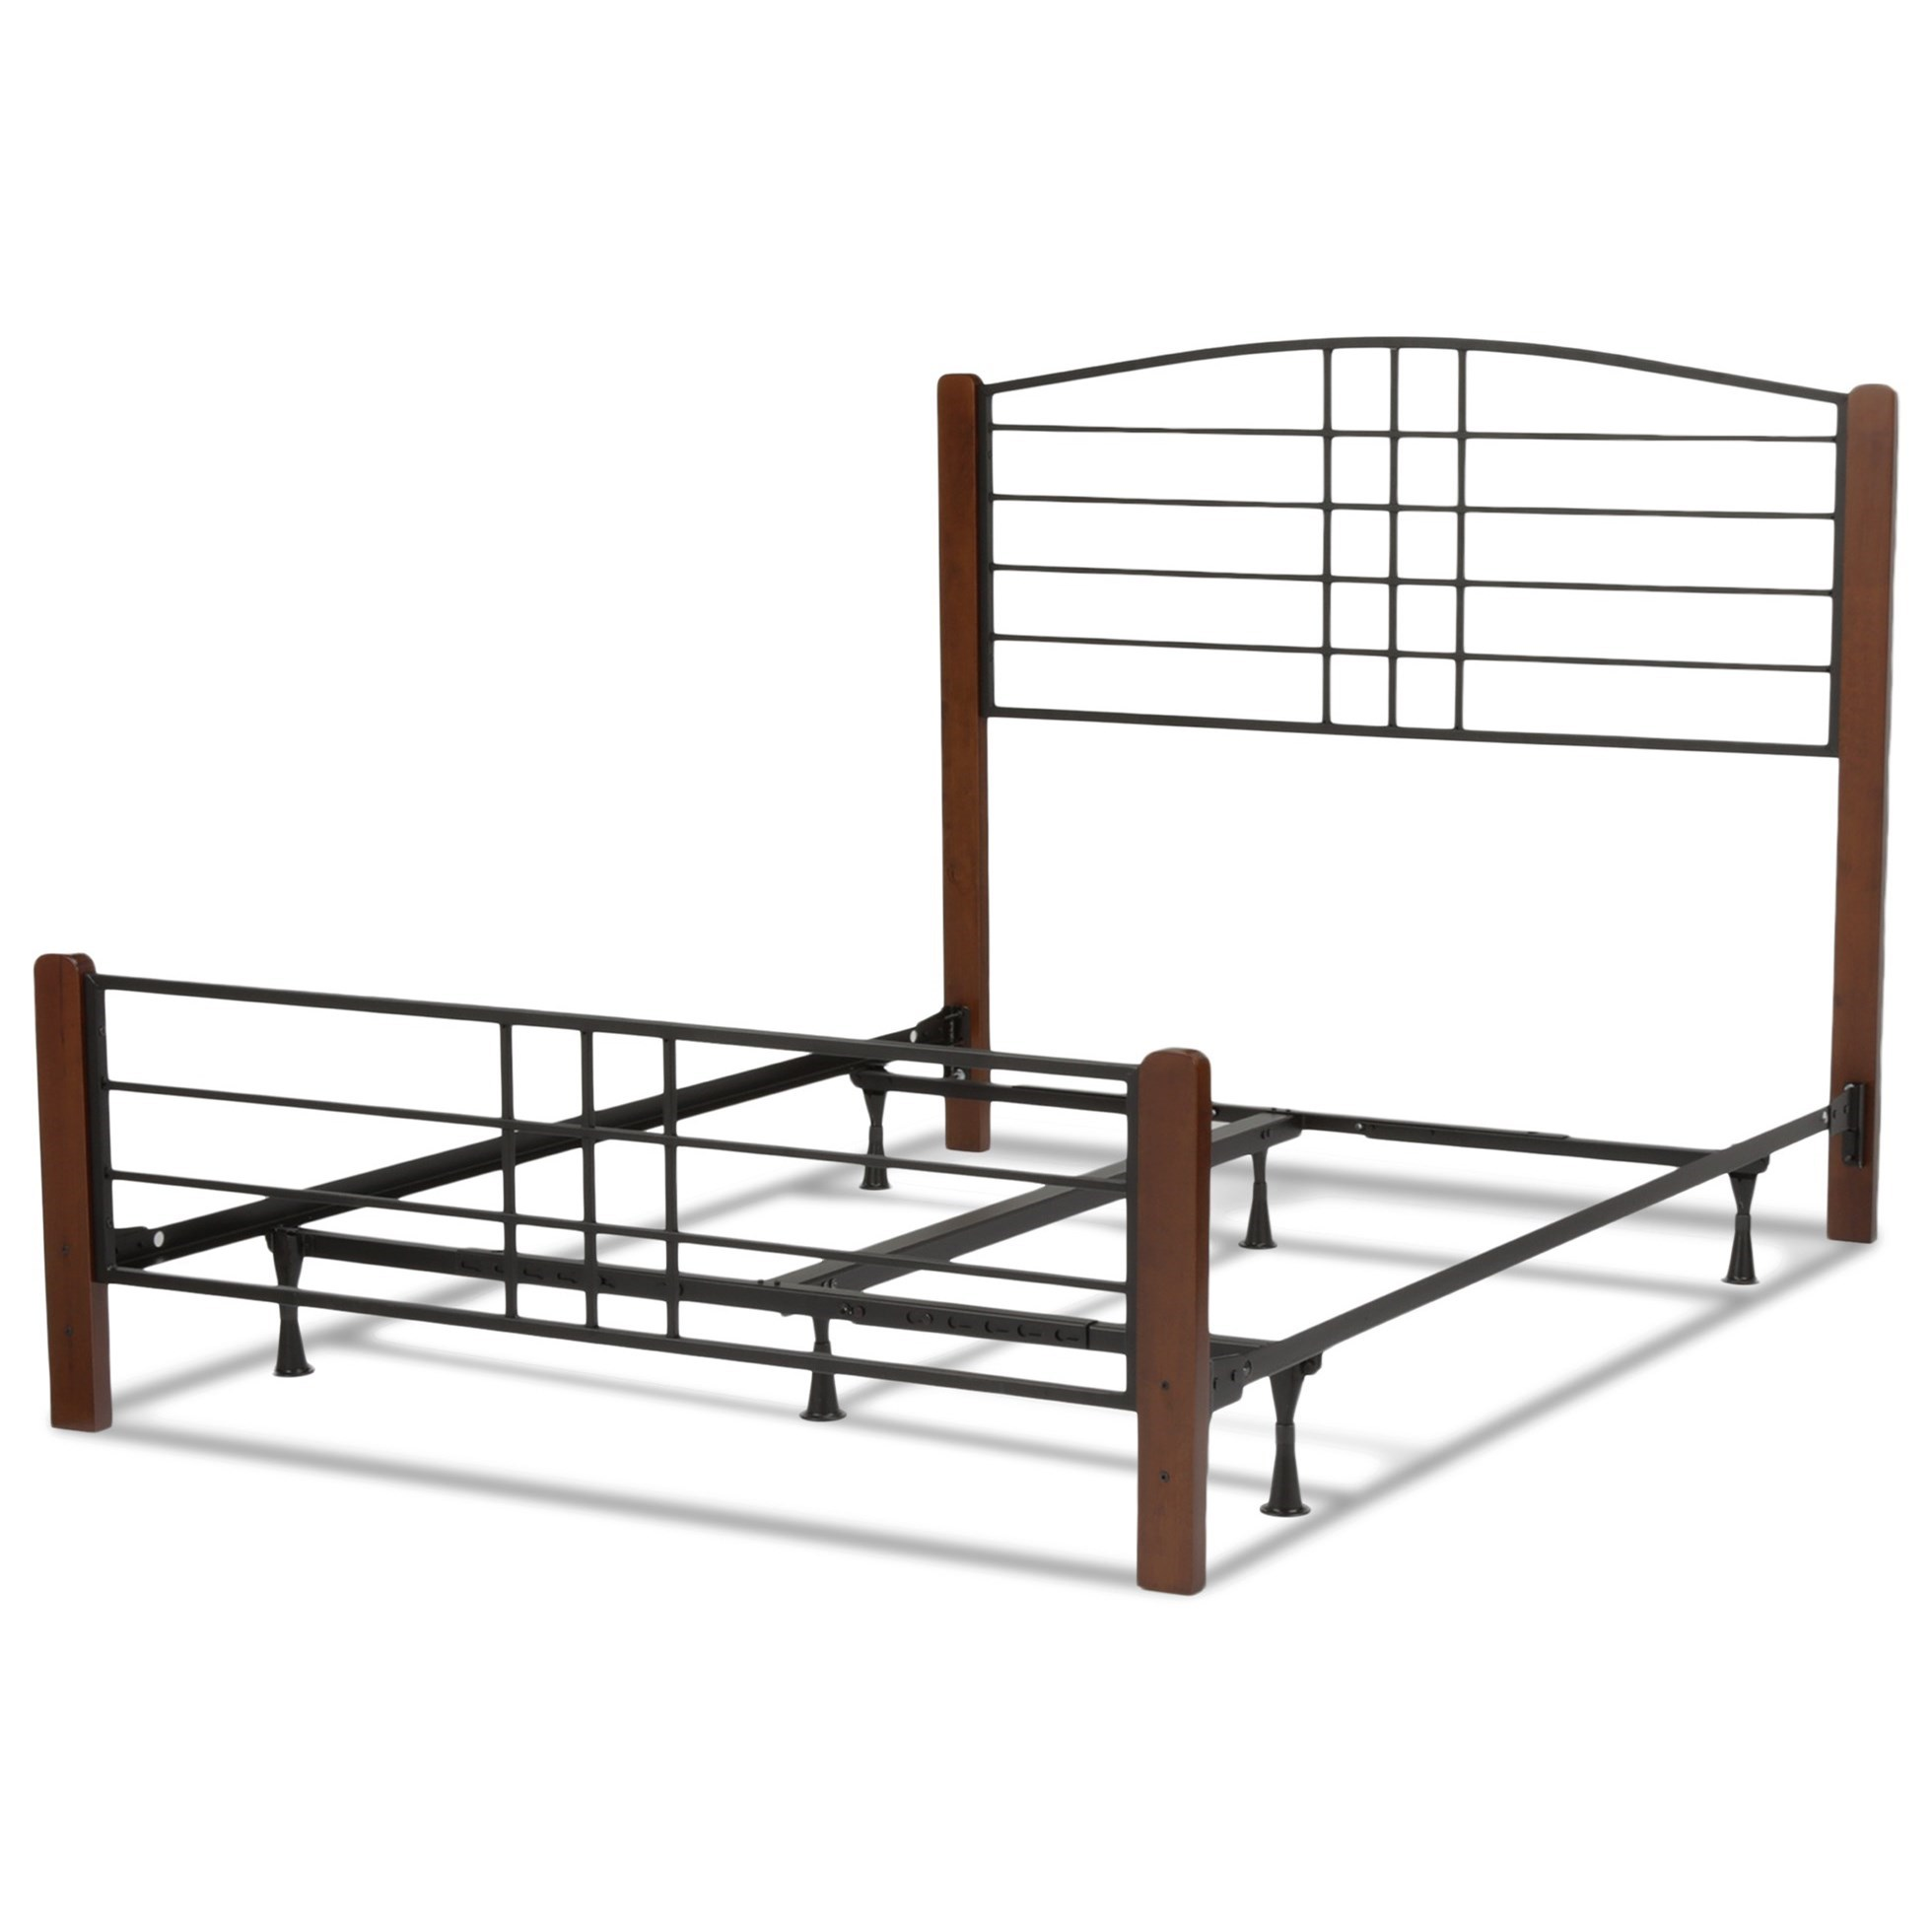 Fashion Bed Group Wood Beds Full Wood and Metal Ornamental Bed - Item Number: B91854